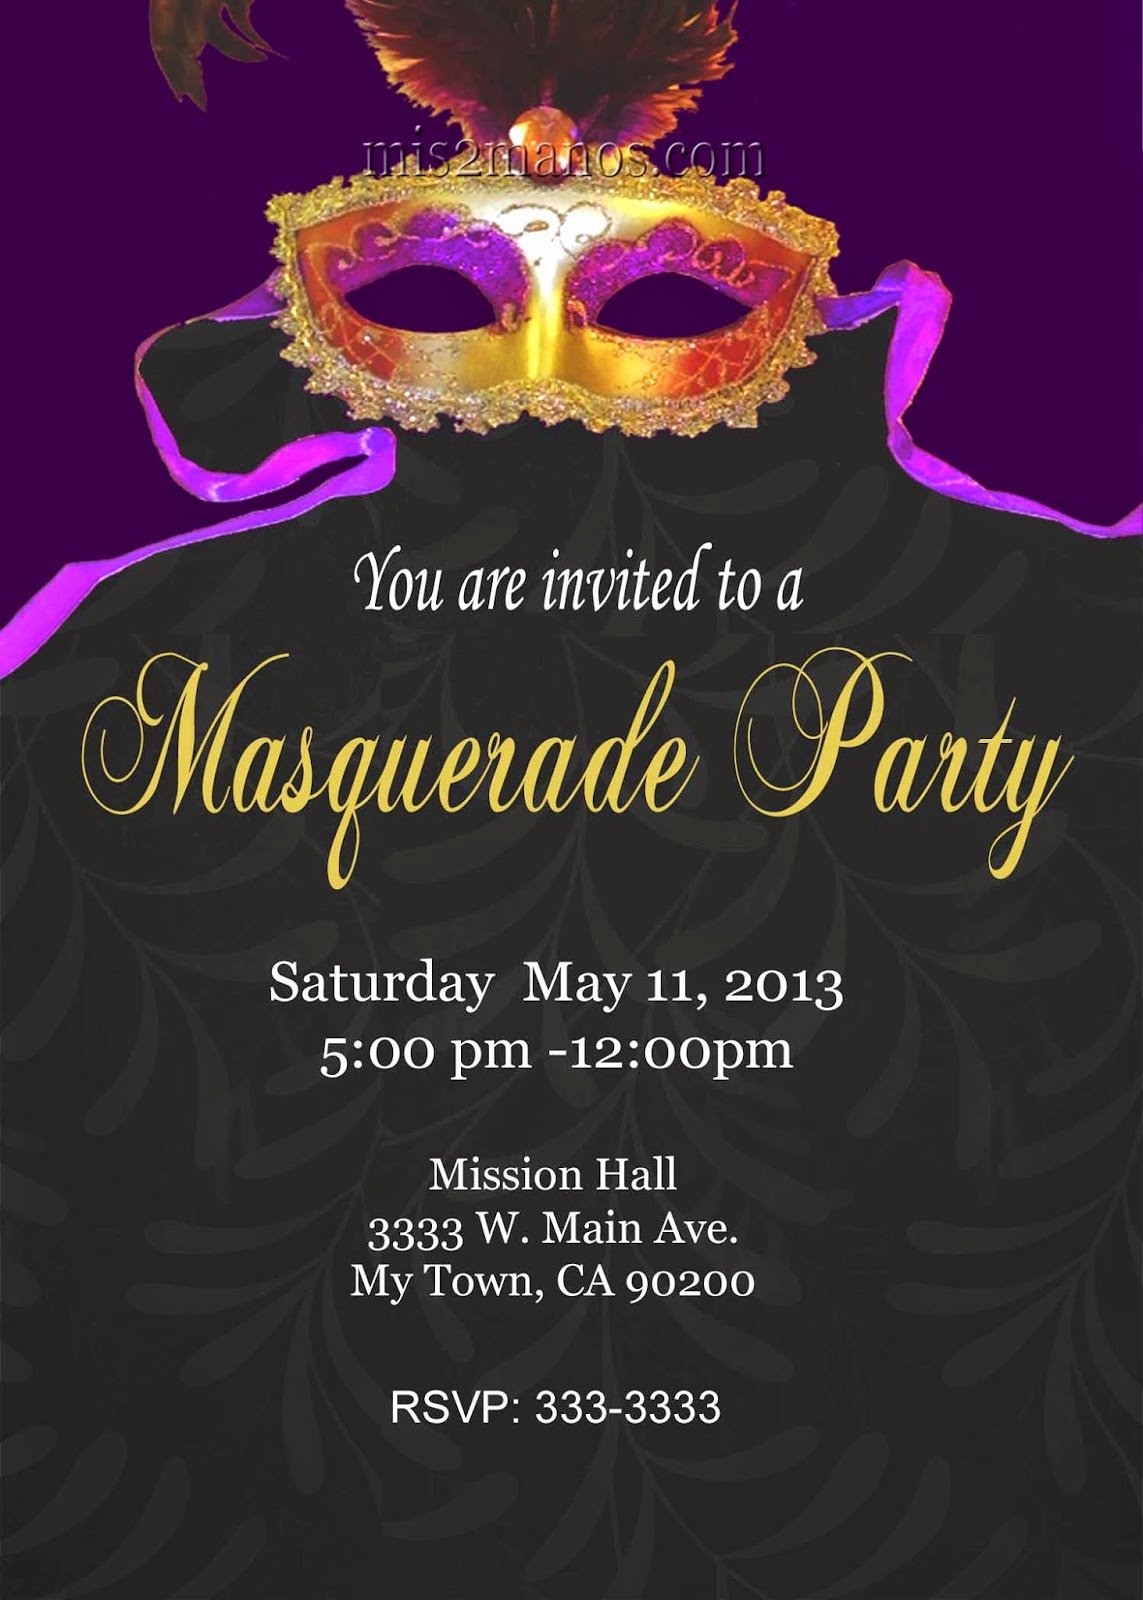 Masquerade Invitations Templates Free Best Of Mis 2 Manos Made by My Hands Mardi Gras Christmas Bridal Shower Baby Shower Holiday Digital